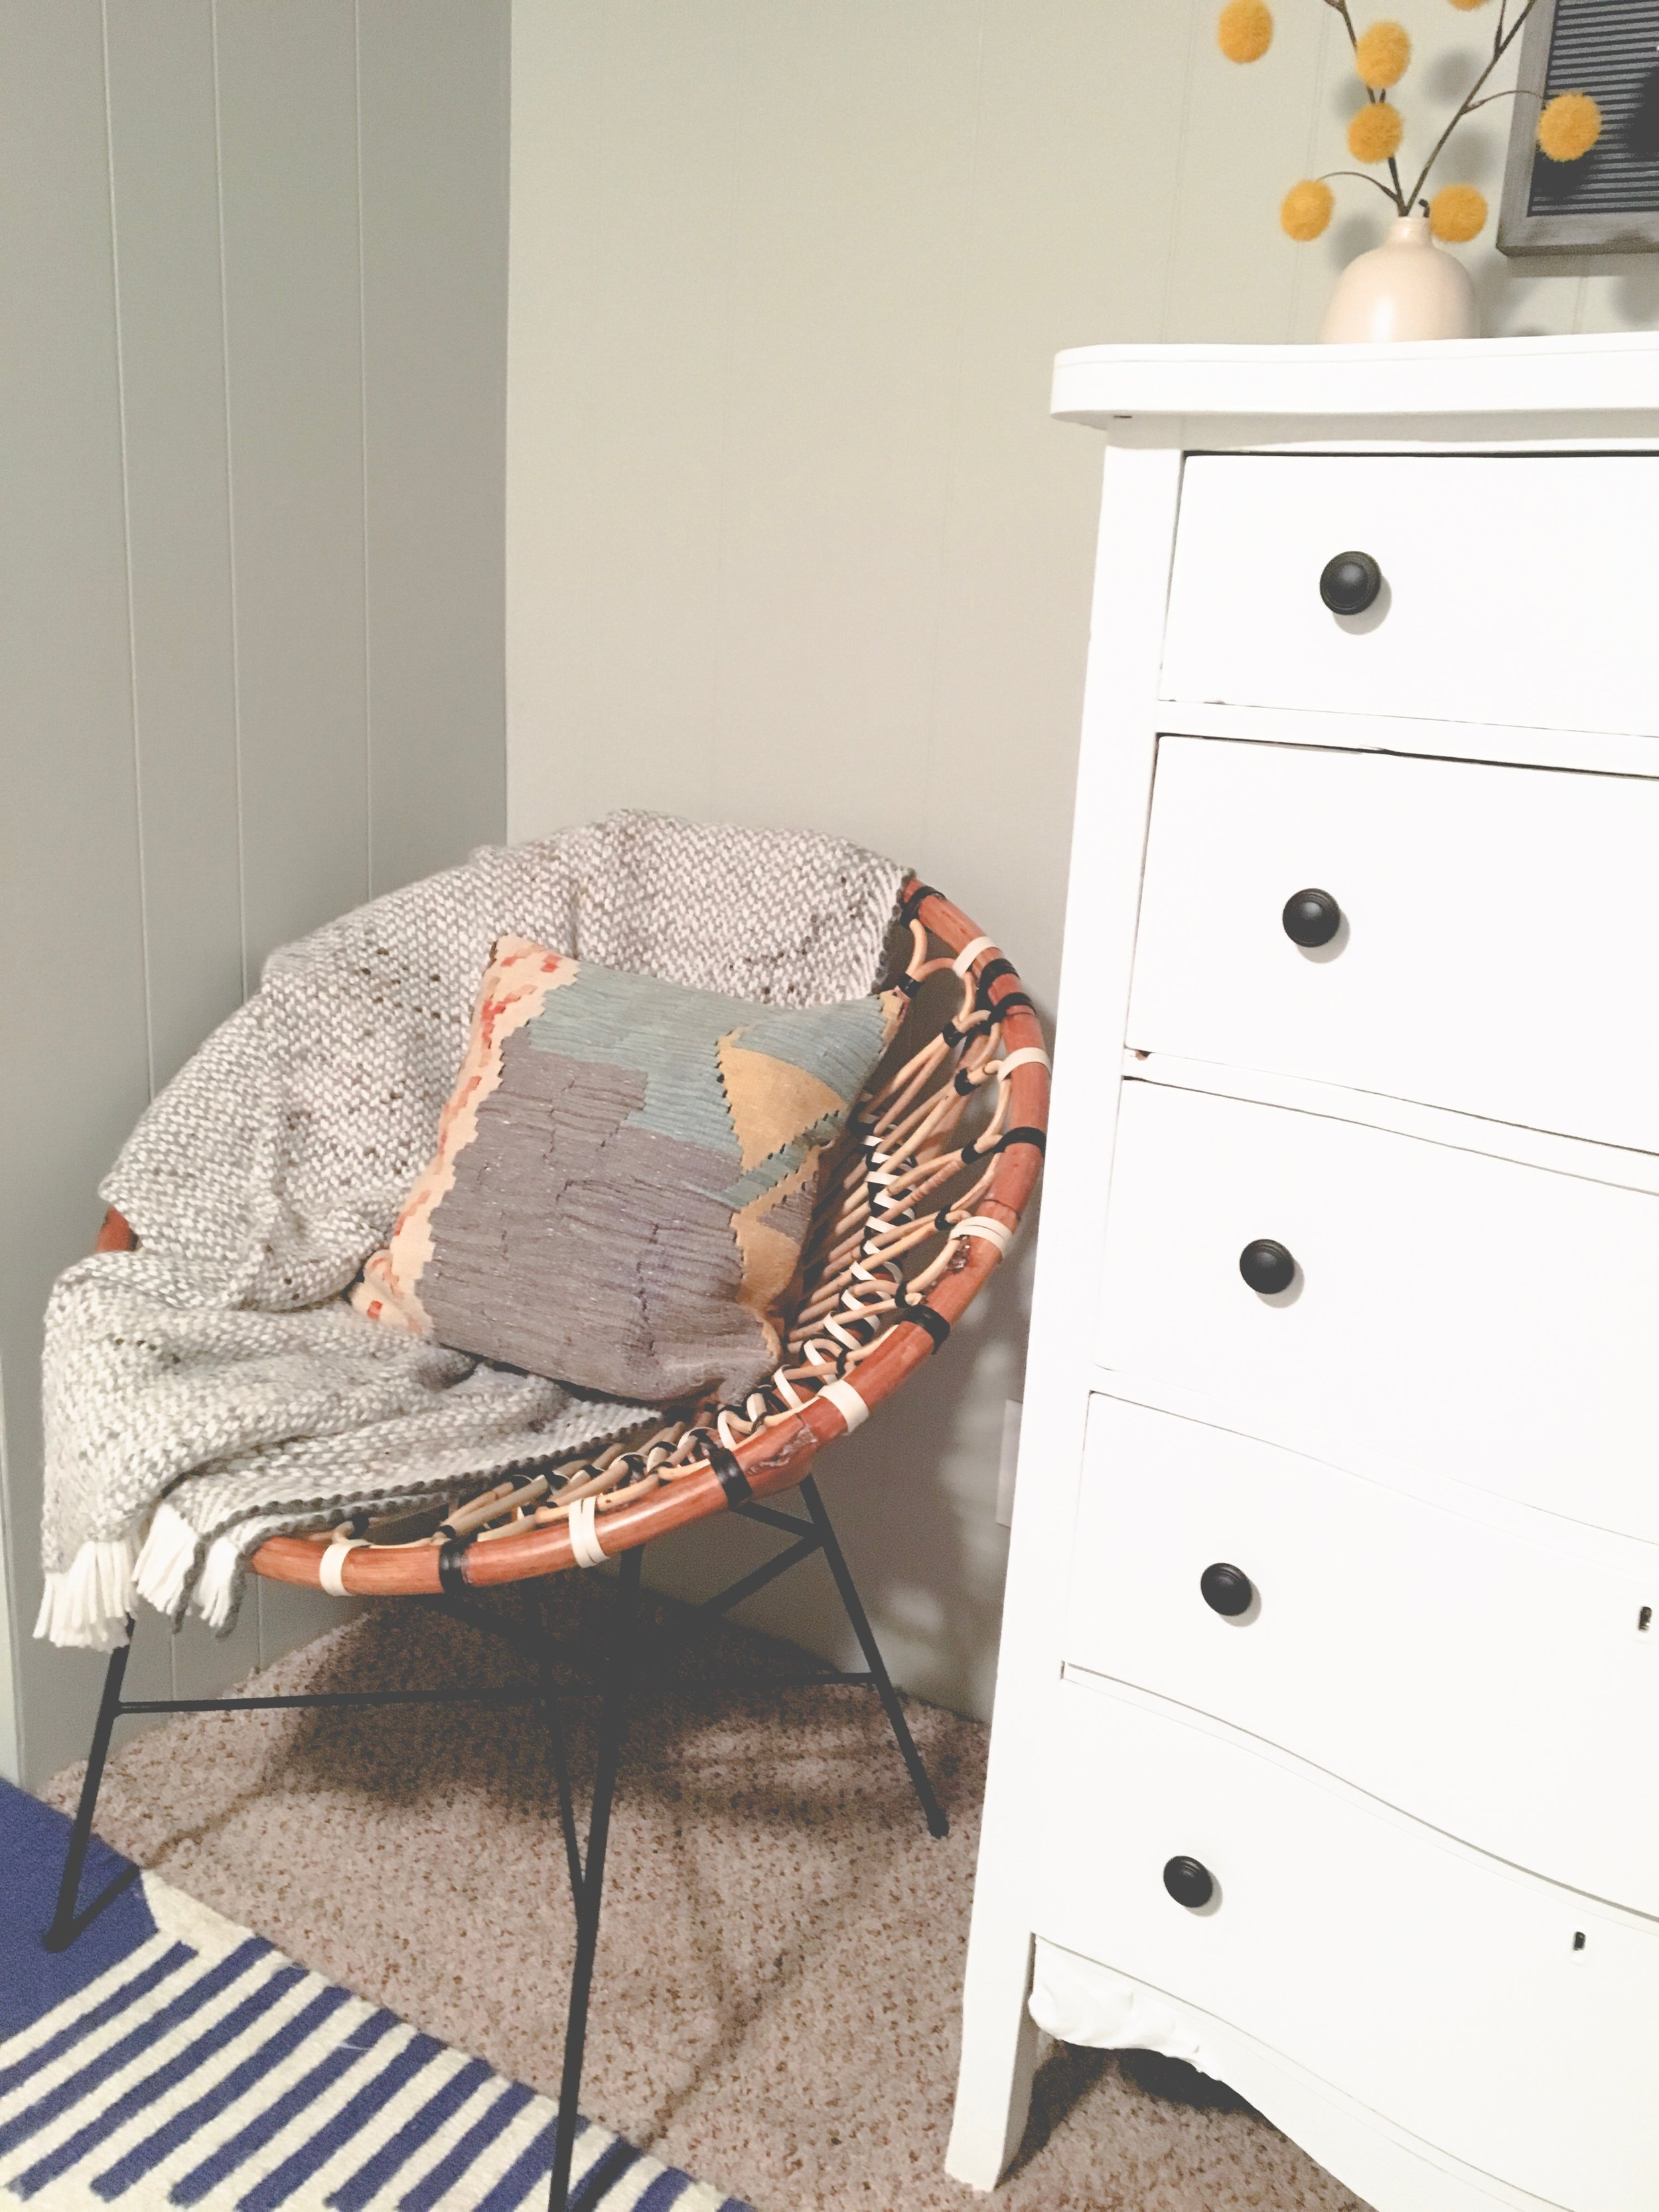 Our boring guest room gets a whole new modern cozy chic cabin look! Learn how to redecorate your guest room so it feels cozy and welcoming. Create a little reading nook with this cute rattan chair.